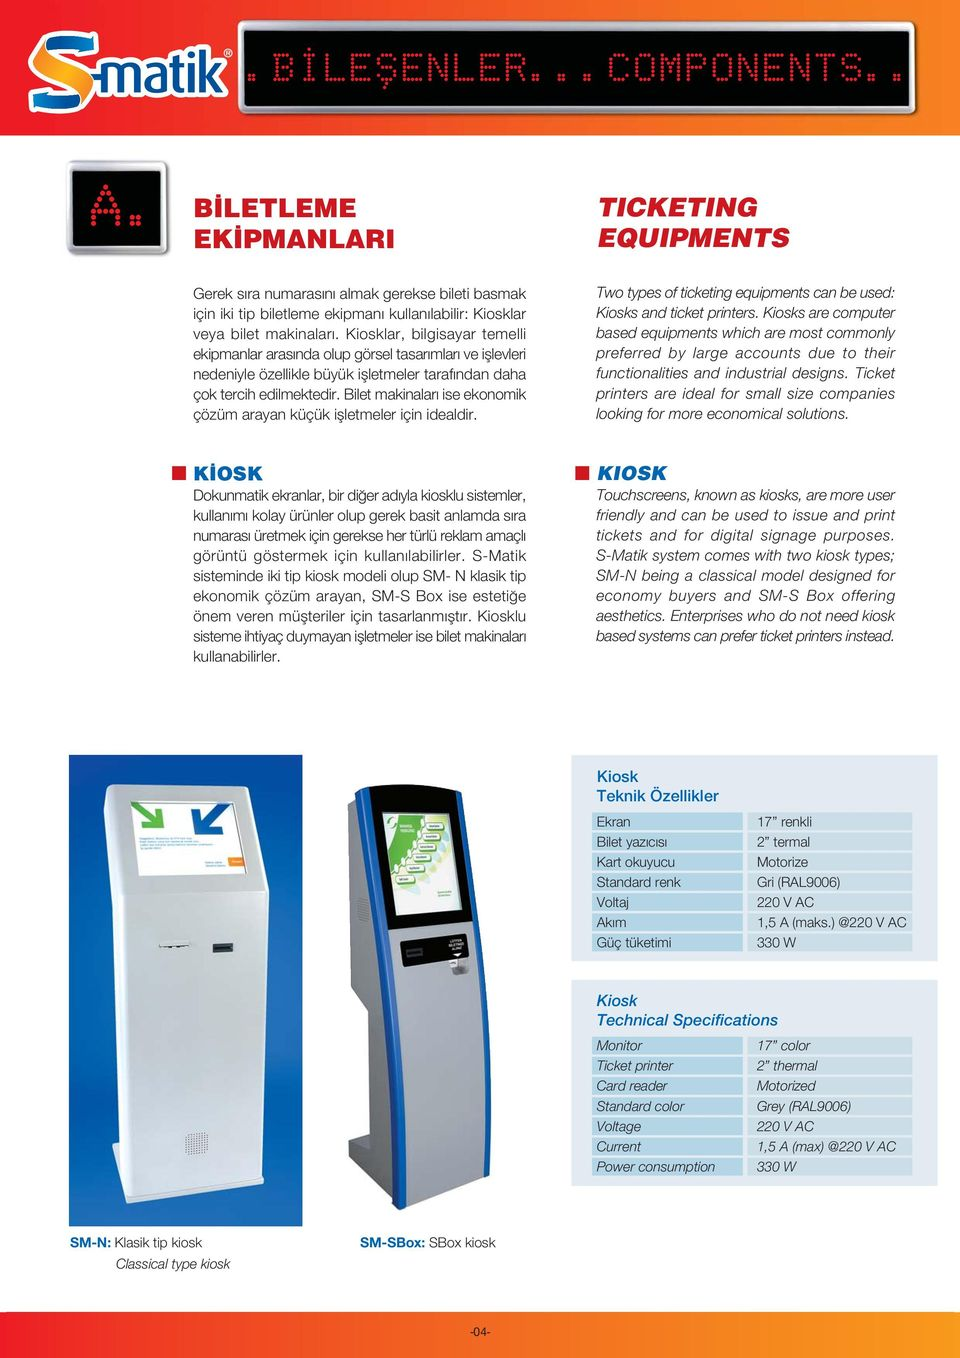 Bilet makinalar ise ekonomik çözüm arayan küçük iflletmeler için idealdir. Two types of ticketing equipments can be used: Kiosks and ticket printers.